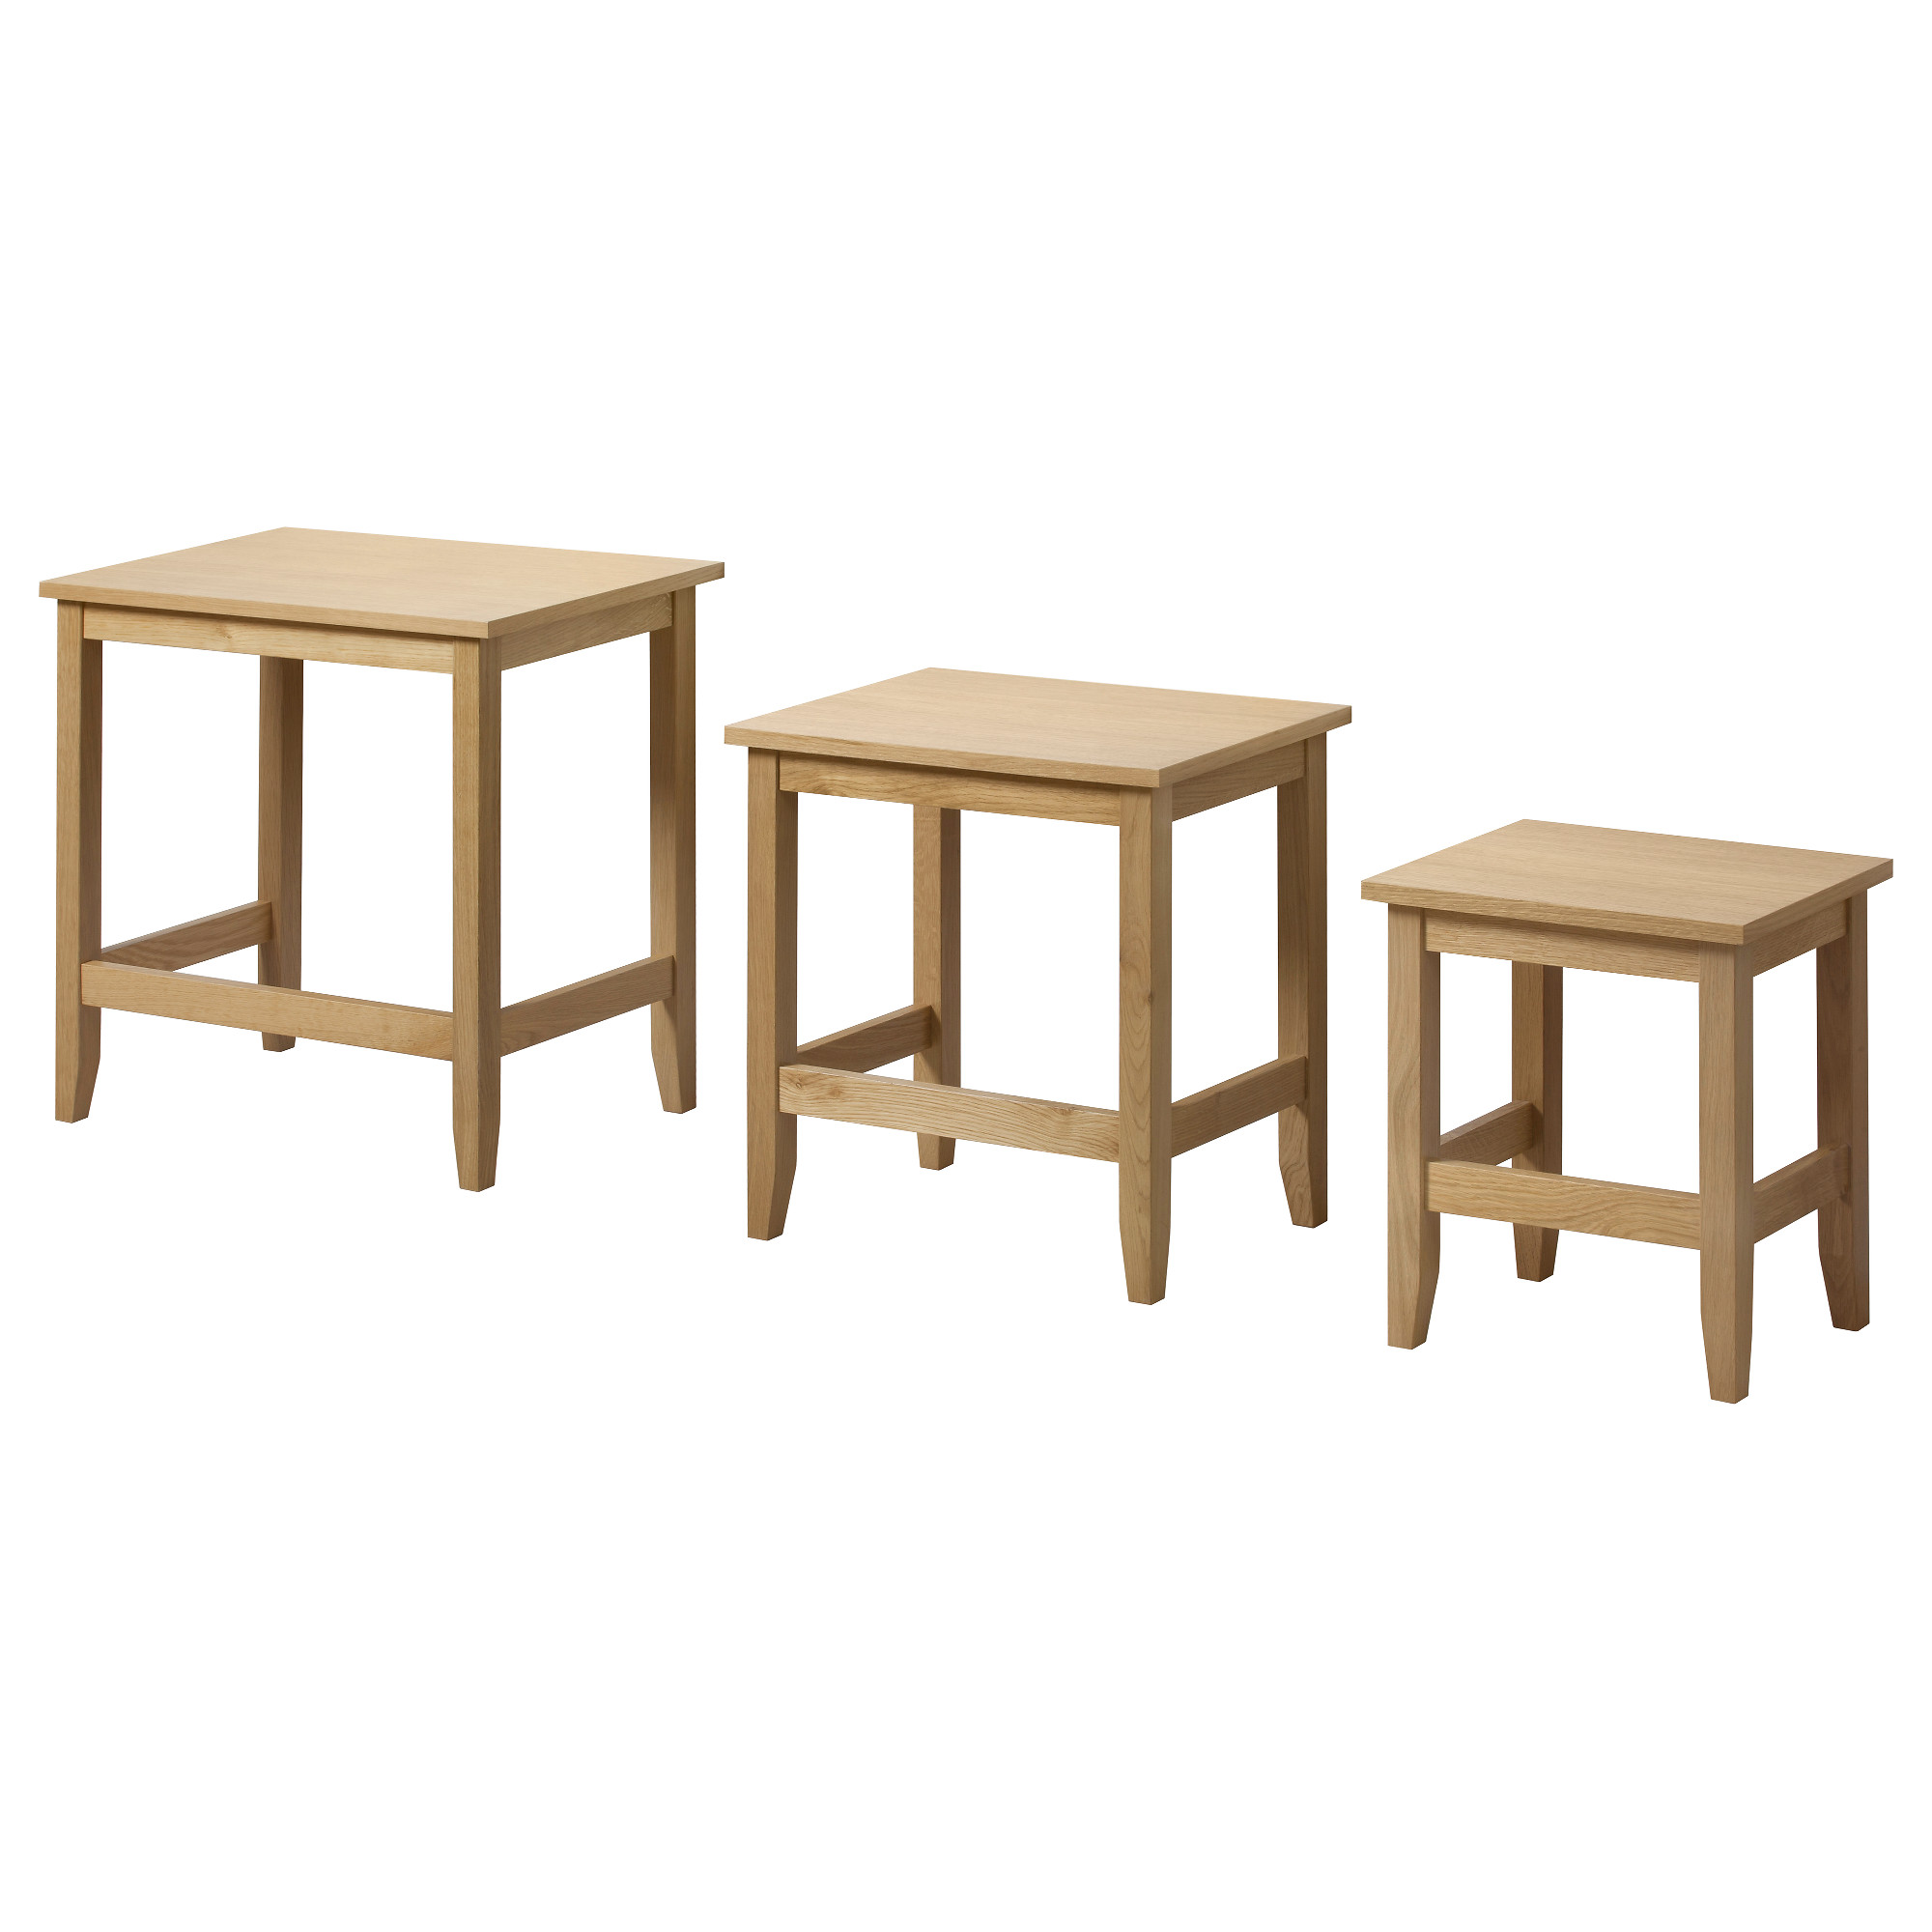 skoghall nest tables set oak living room coffee ikea art can inspired and accent table sets occasional lucite sofa apartment furniture drum stool round patio end silver glass